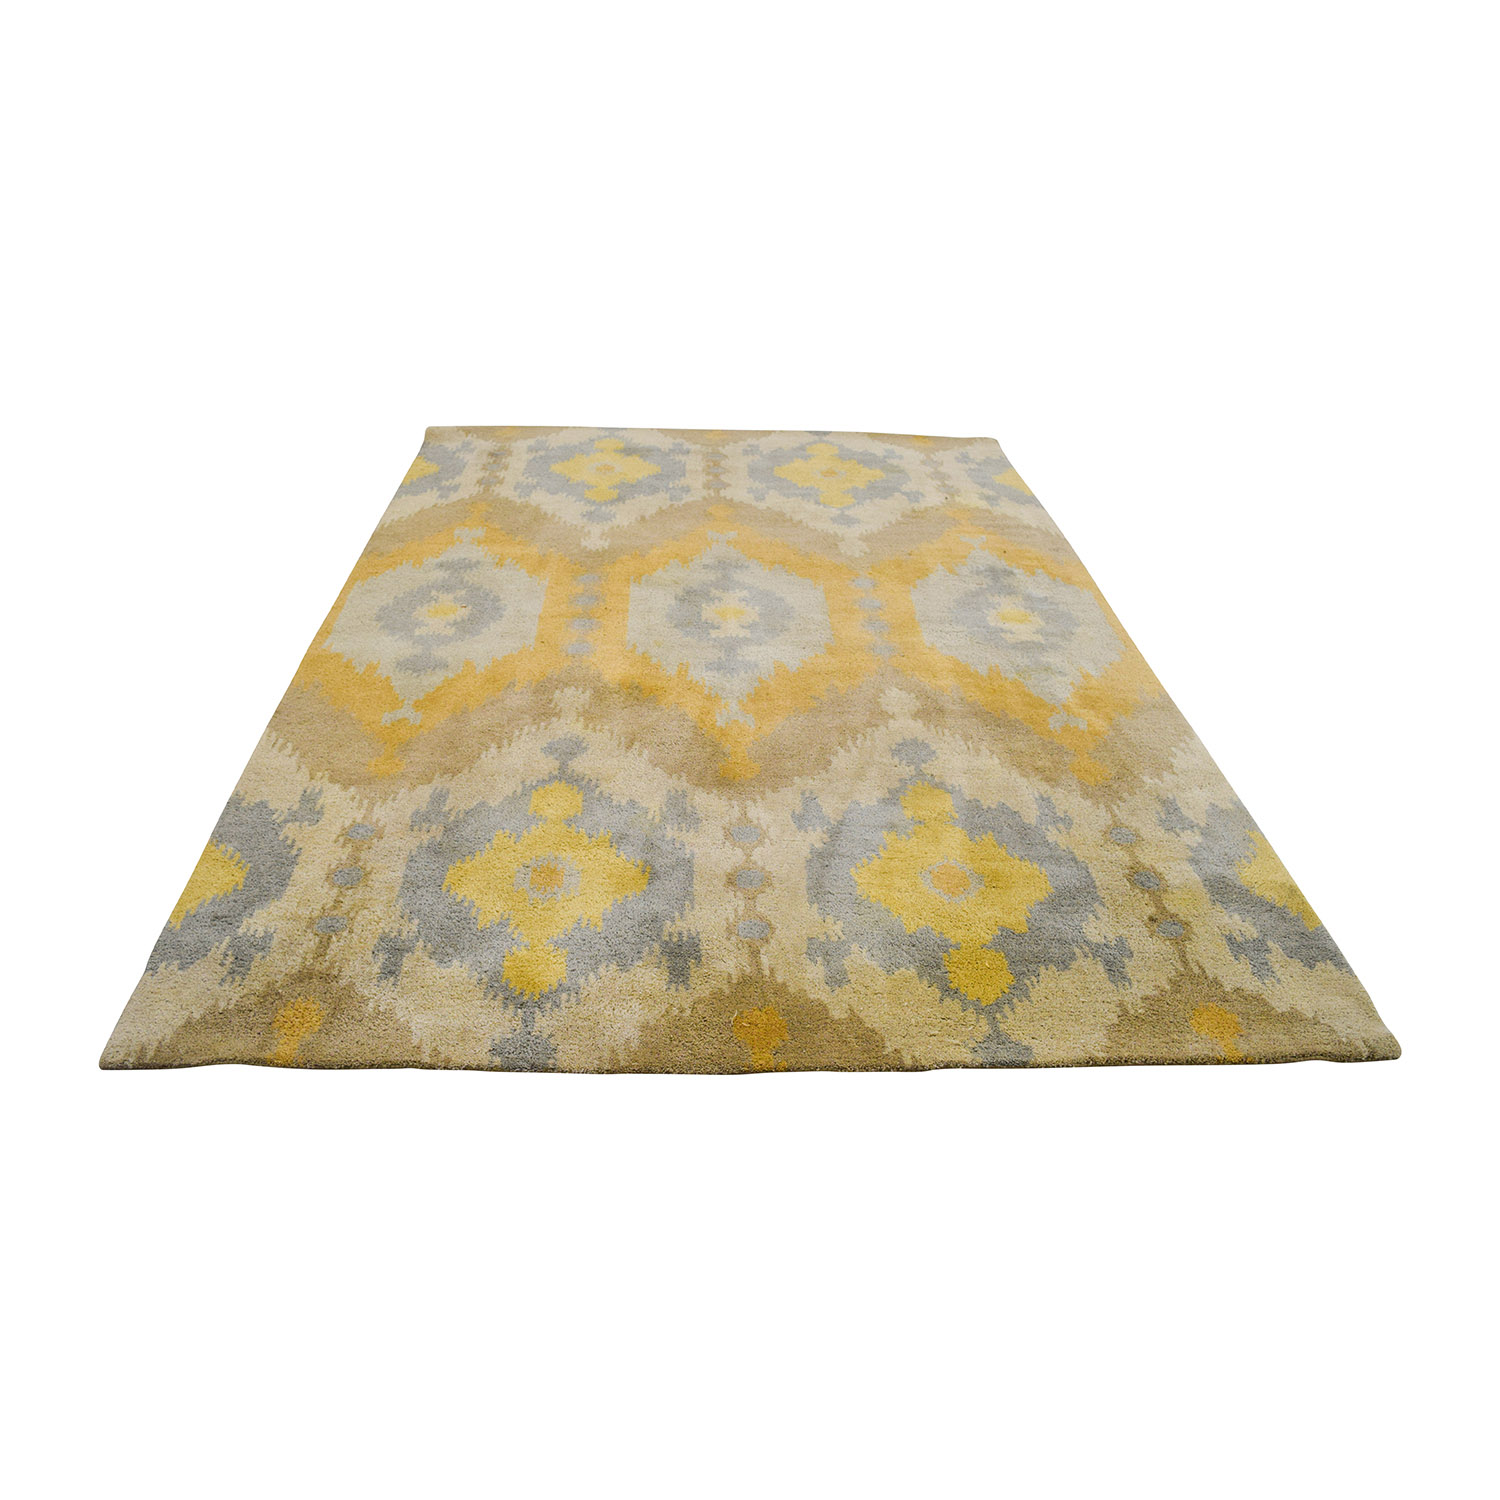 Yellow Beige and Grey Rug used